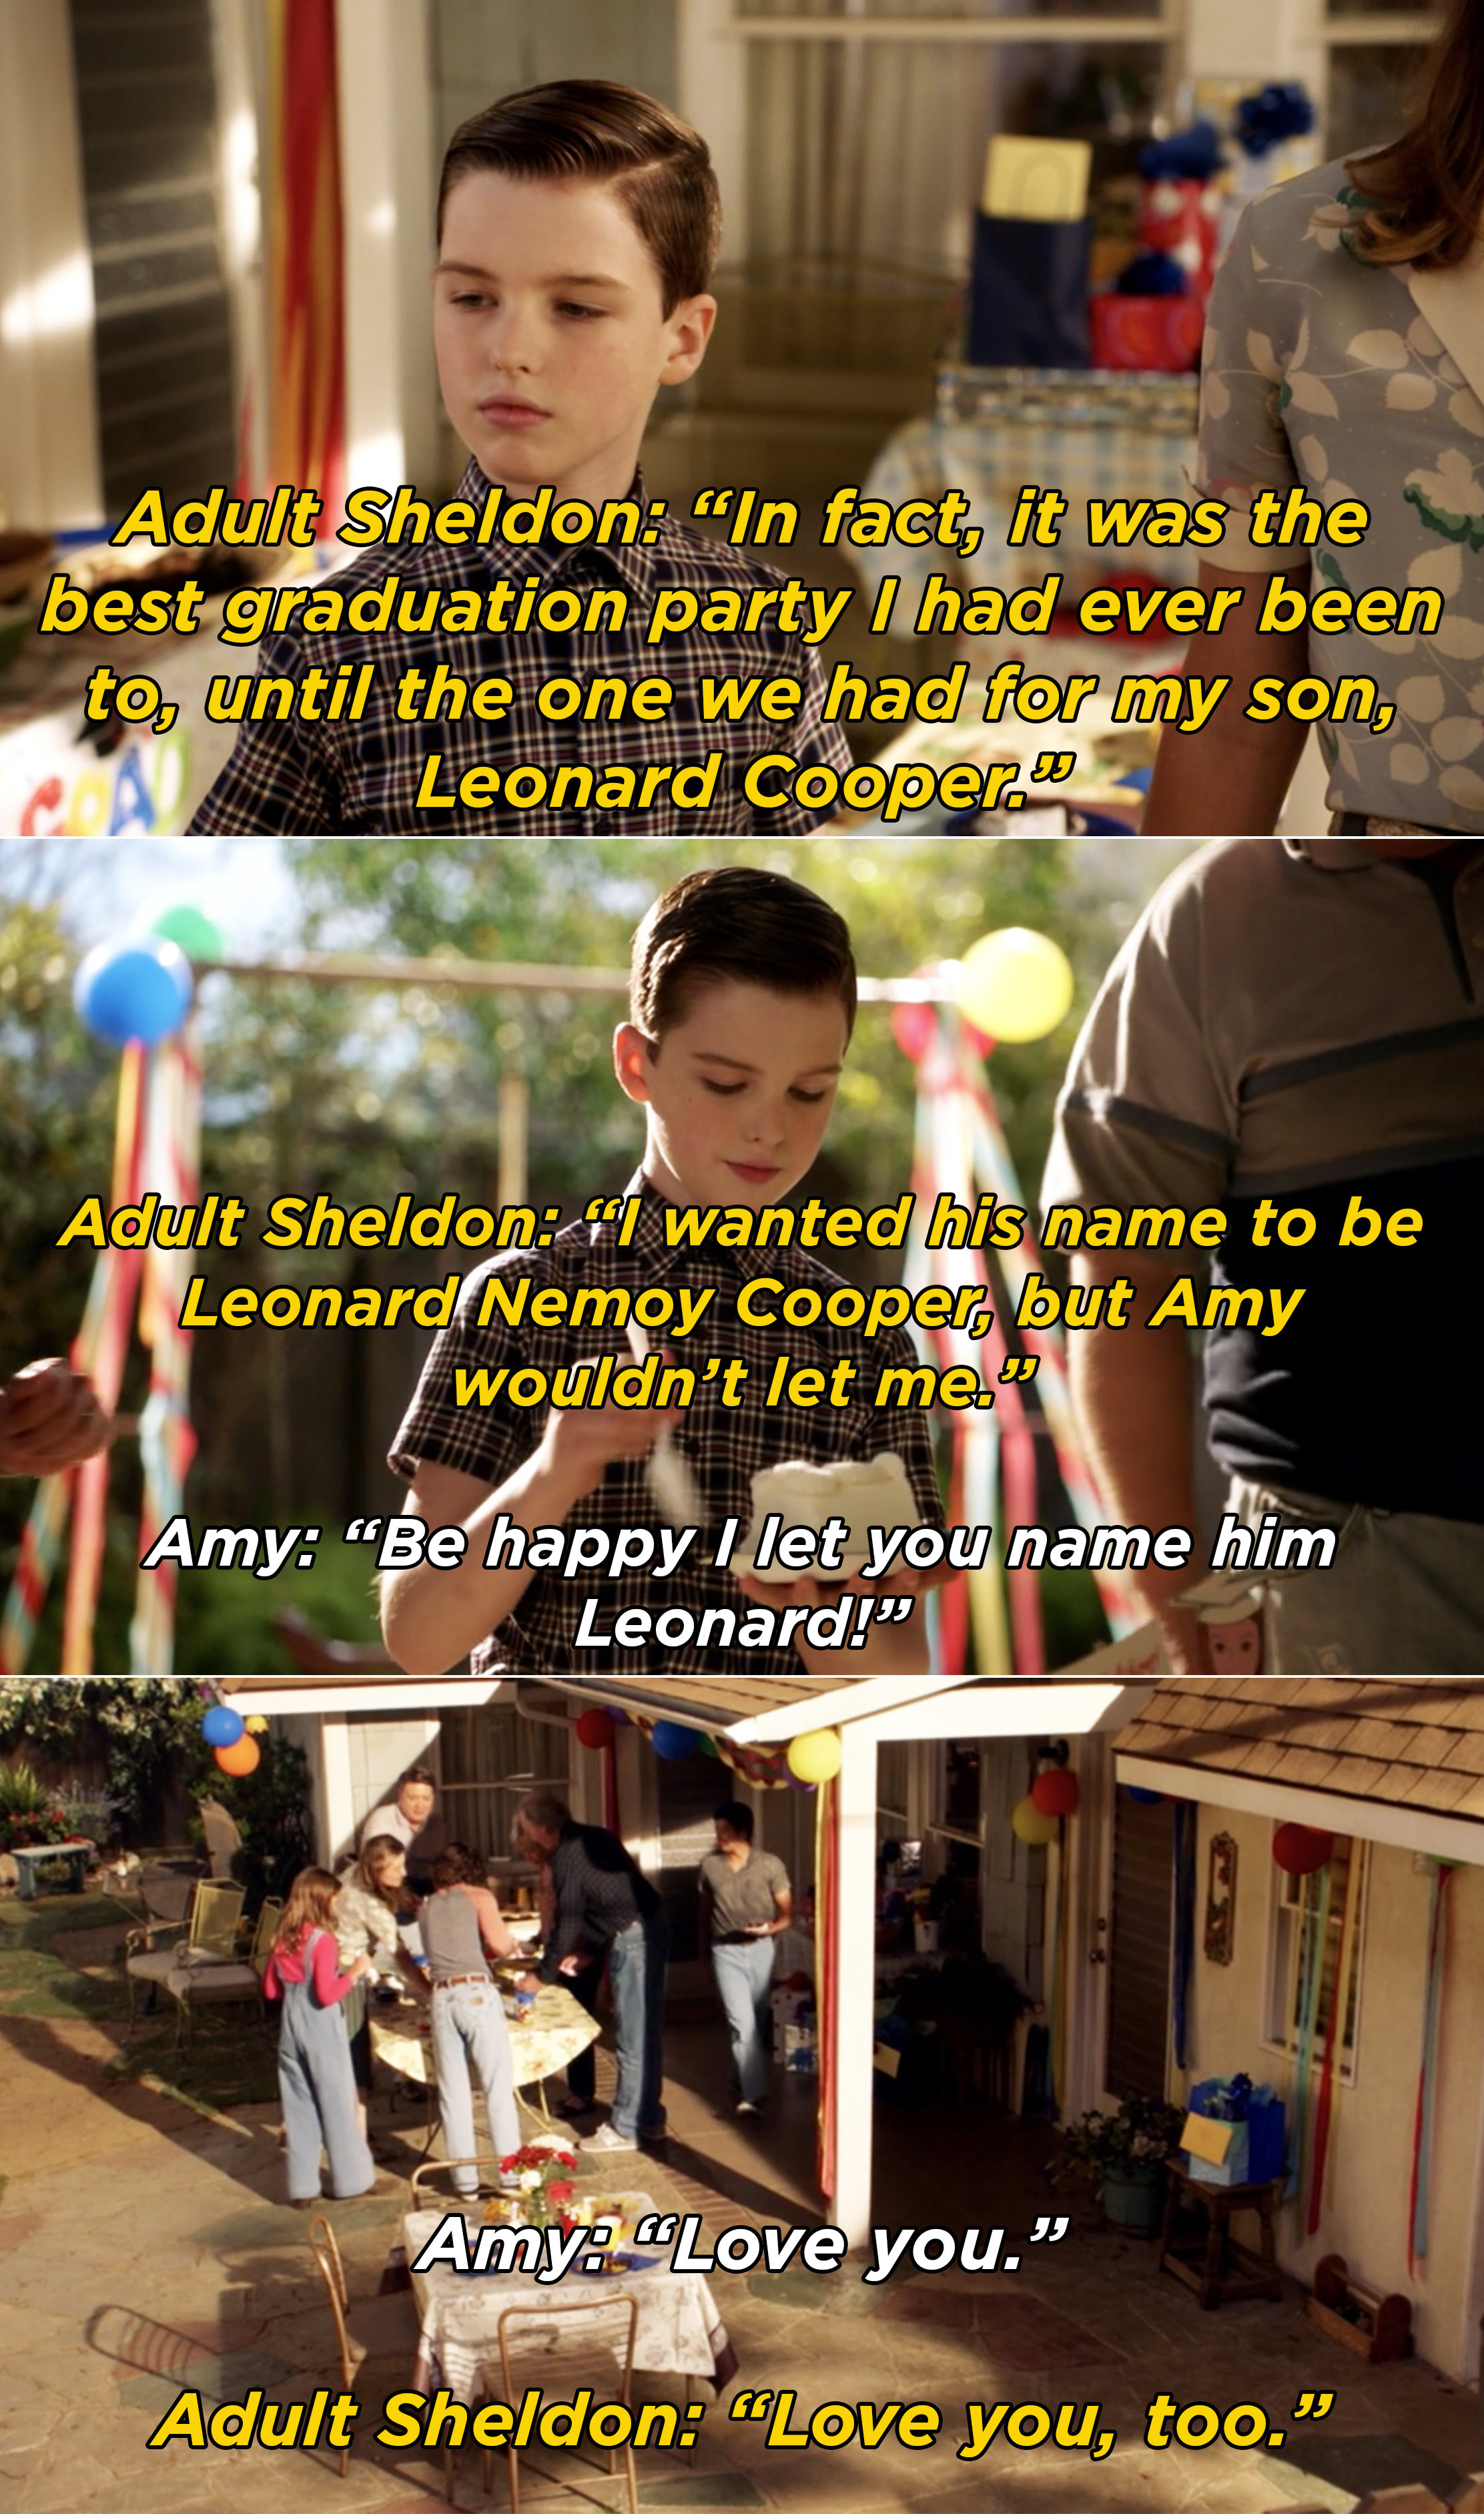 Adult Sheldon explaining how his graduation party when he was a kid was the best, until he threw one for his son, Leonard, and Amy chiming in that he's lucky she let him name their son Leonard